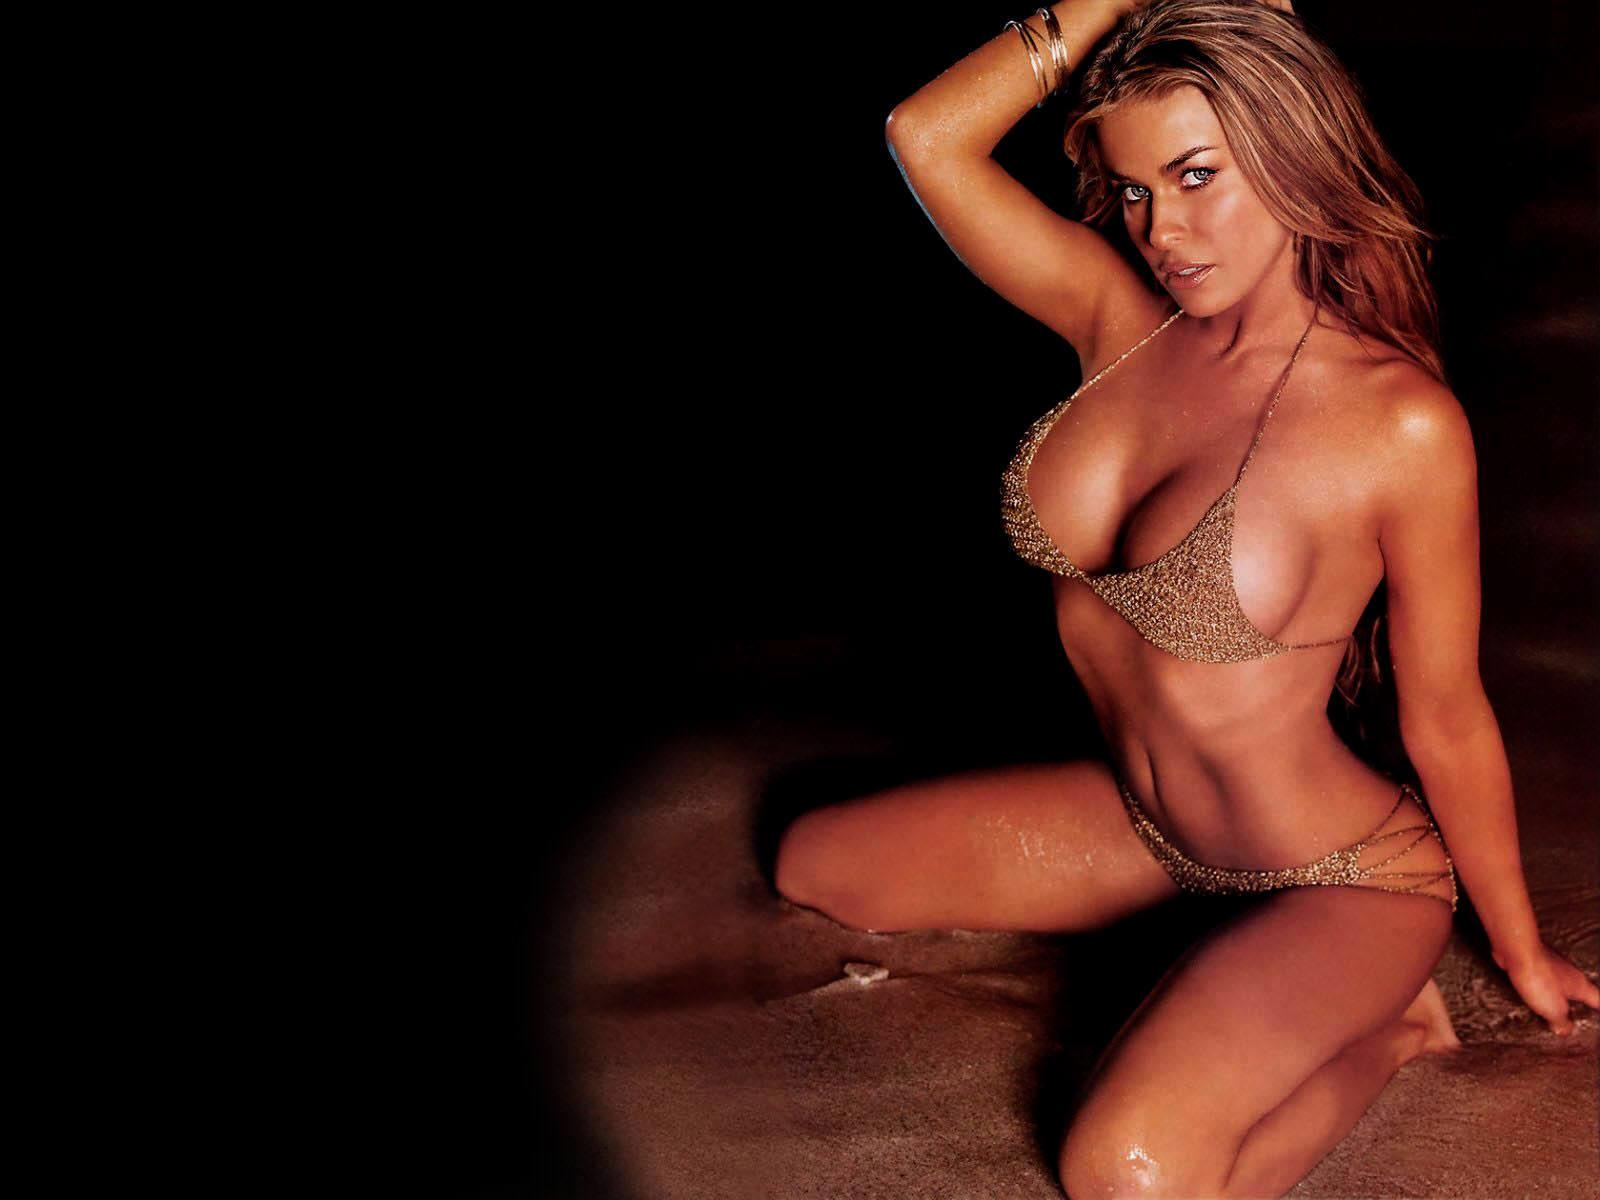 Carmen Electra photos and chrame_11